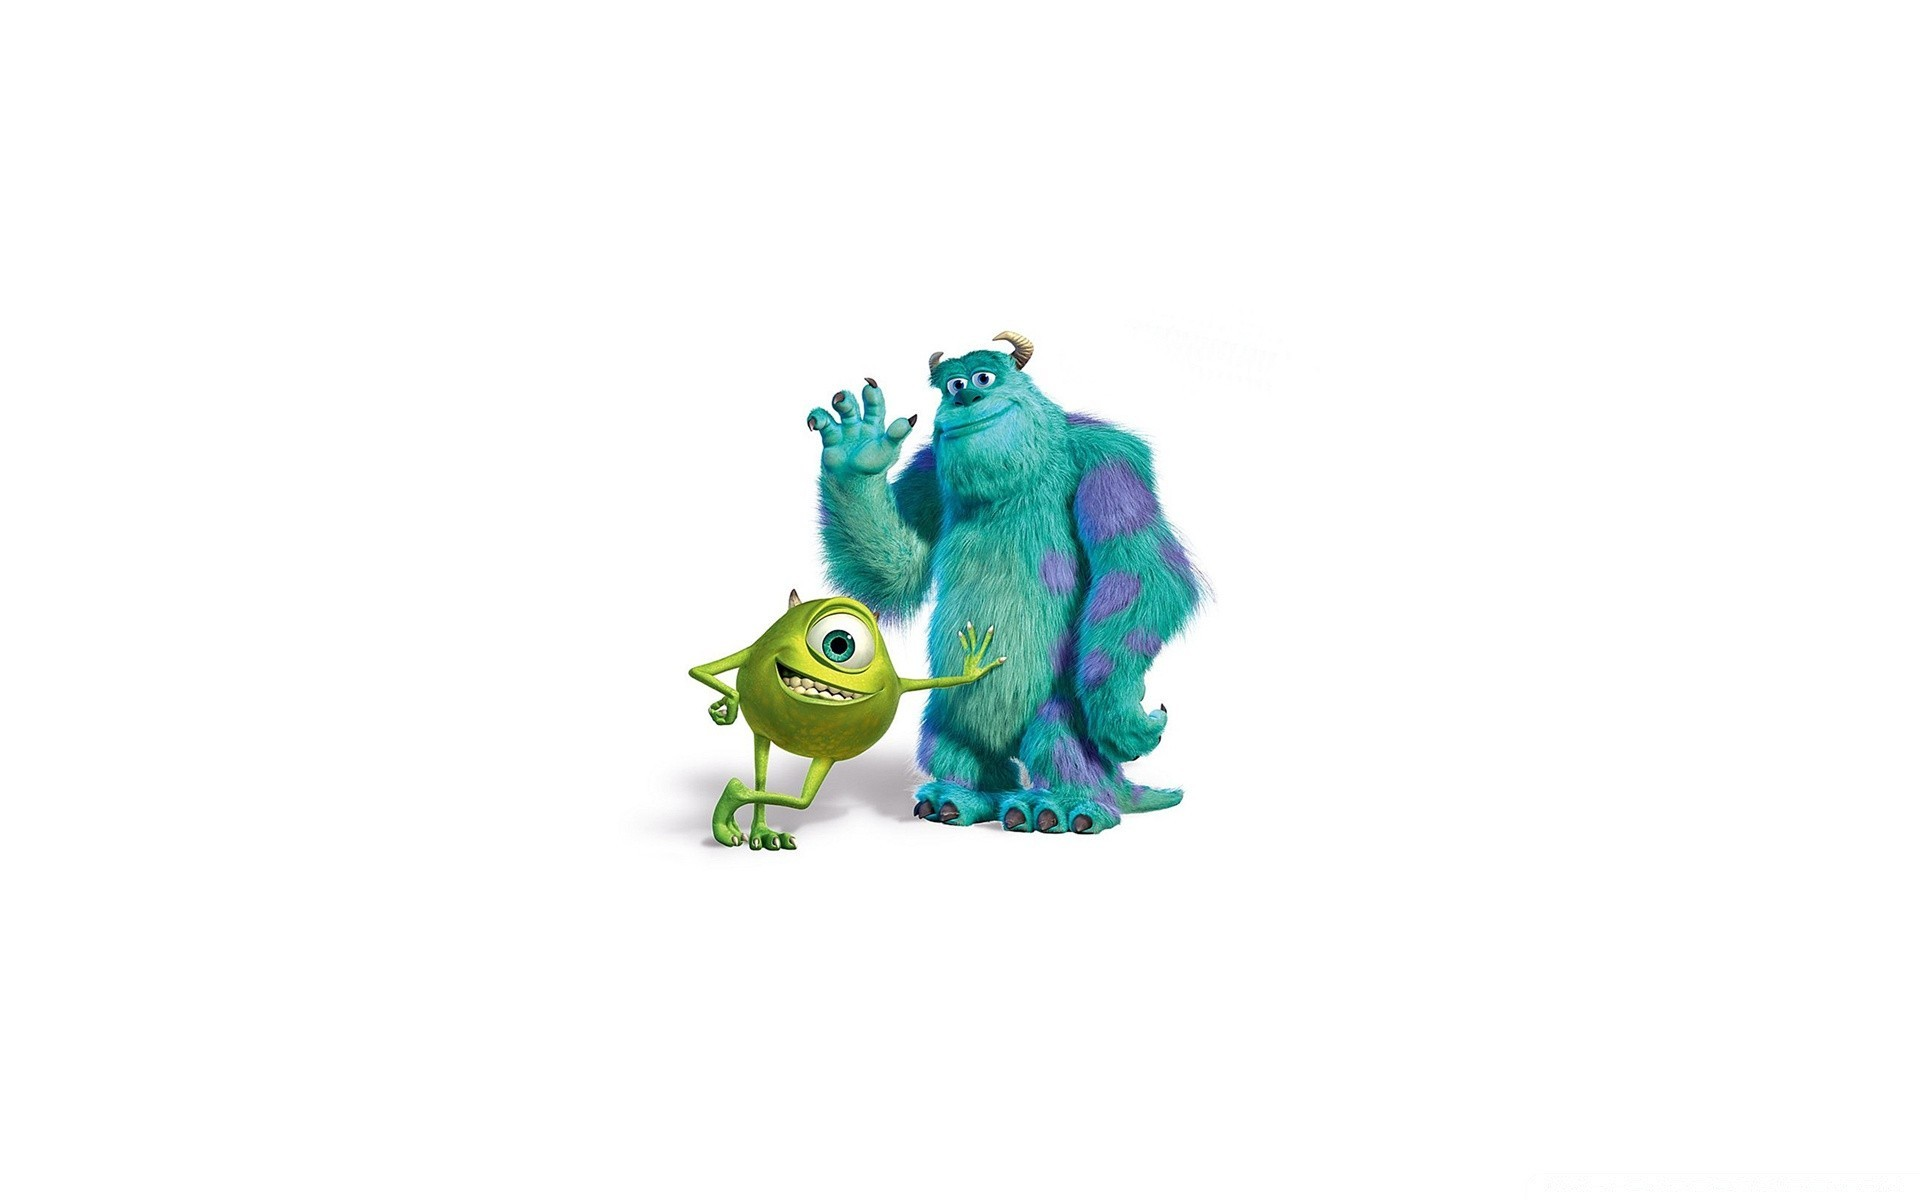 Monsters Inc Салли и Майк